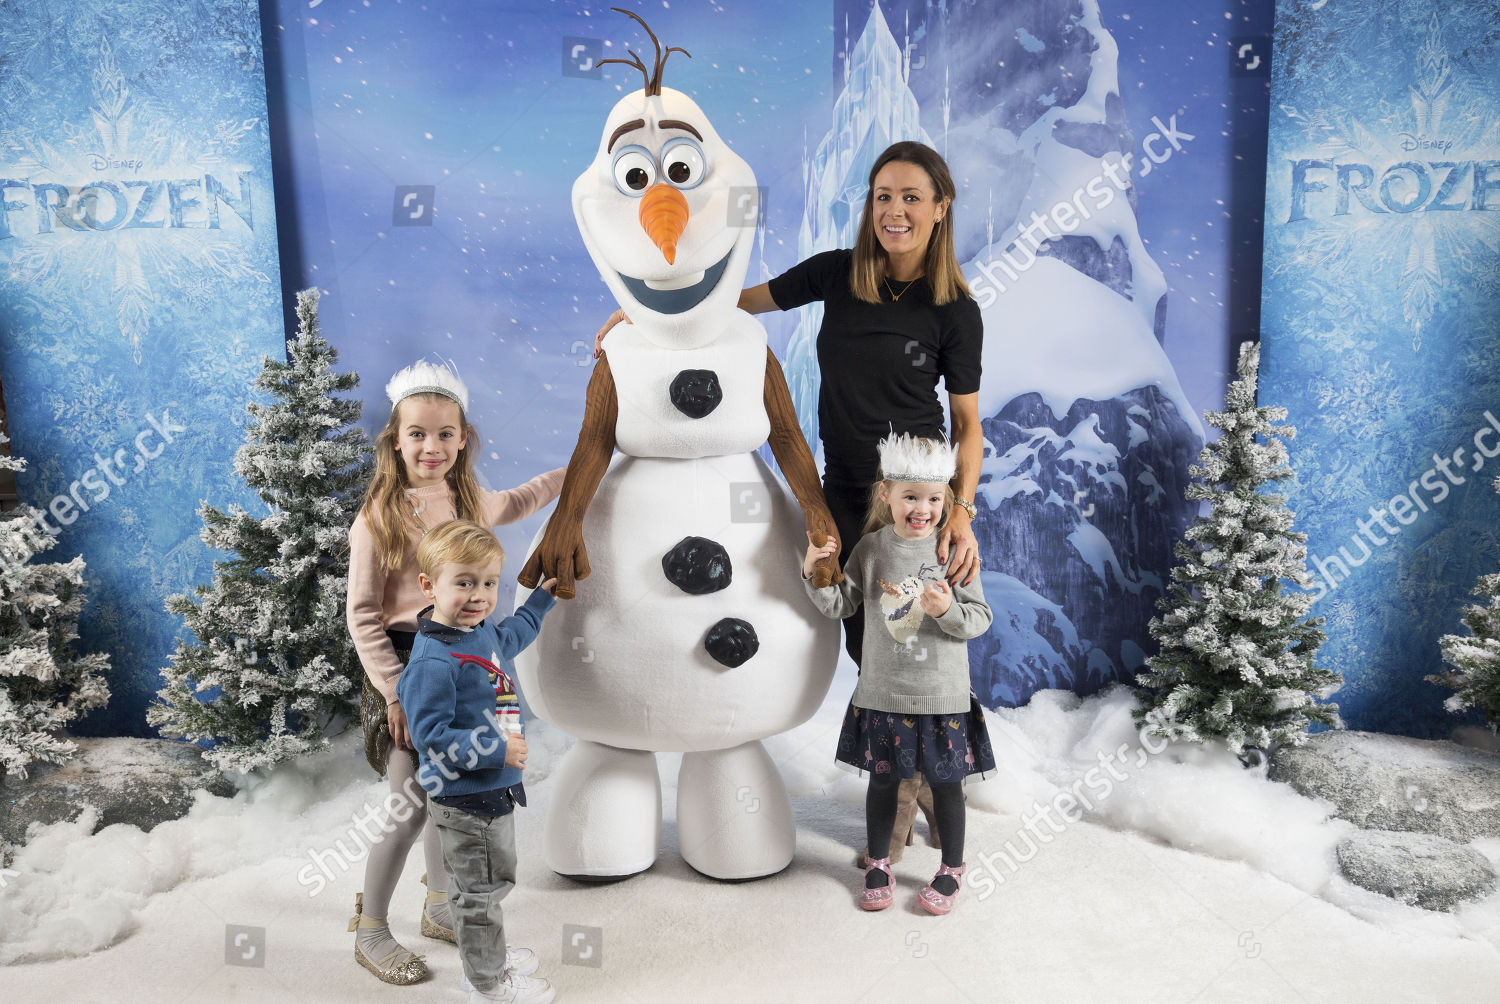 Frozen Christmas Special.Natalie Pinkham Attends Special Holiday Screening Disney